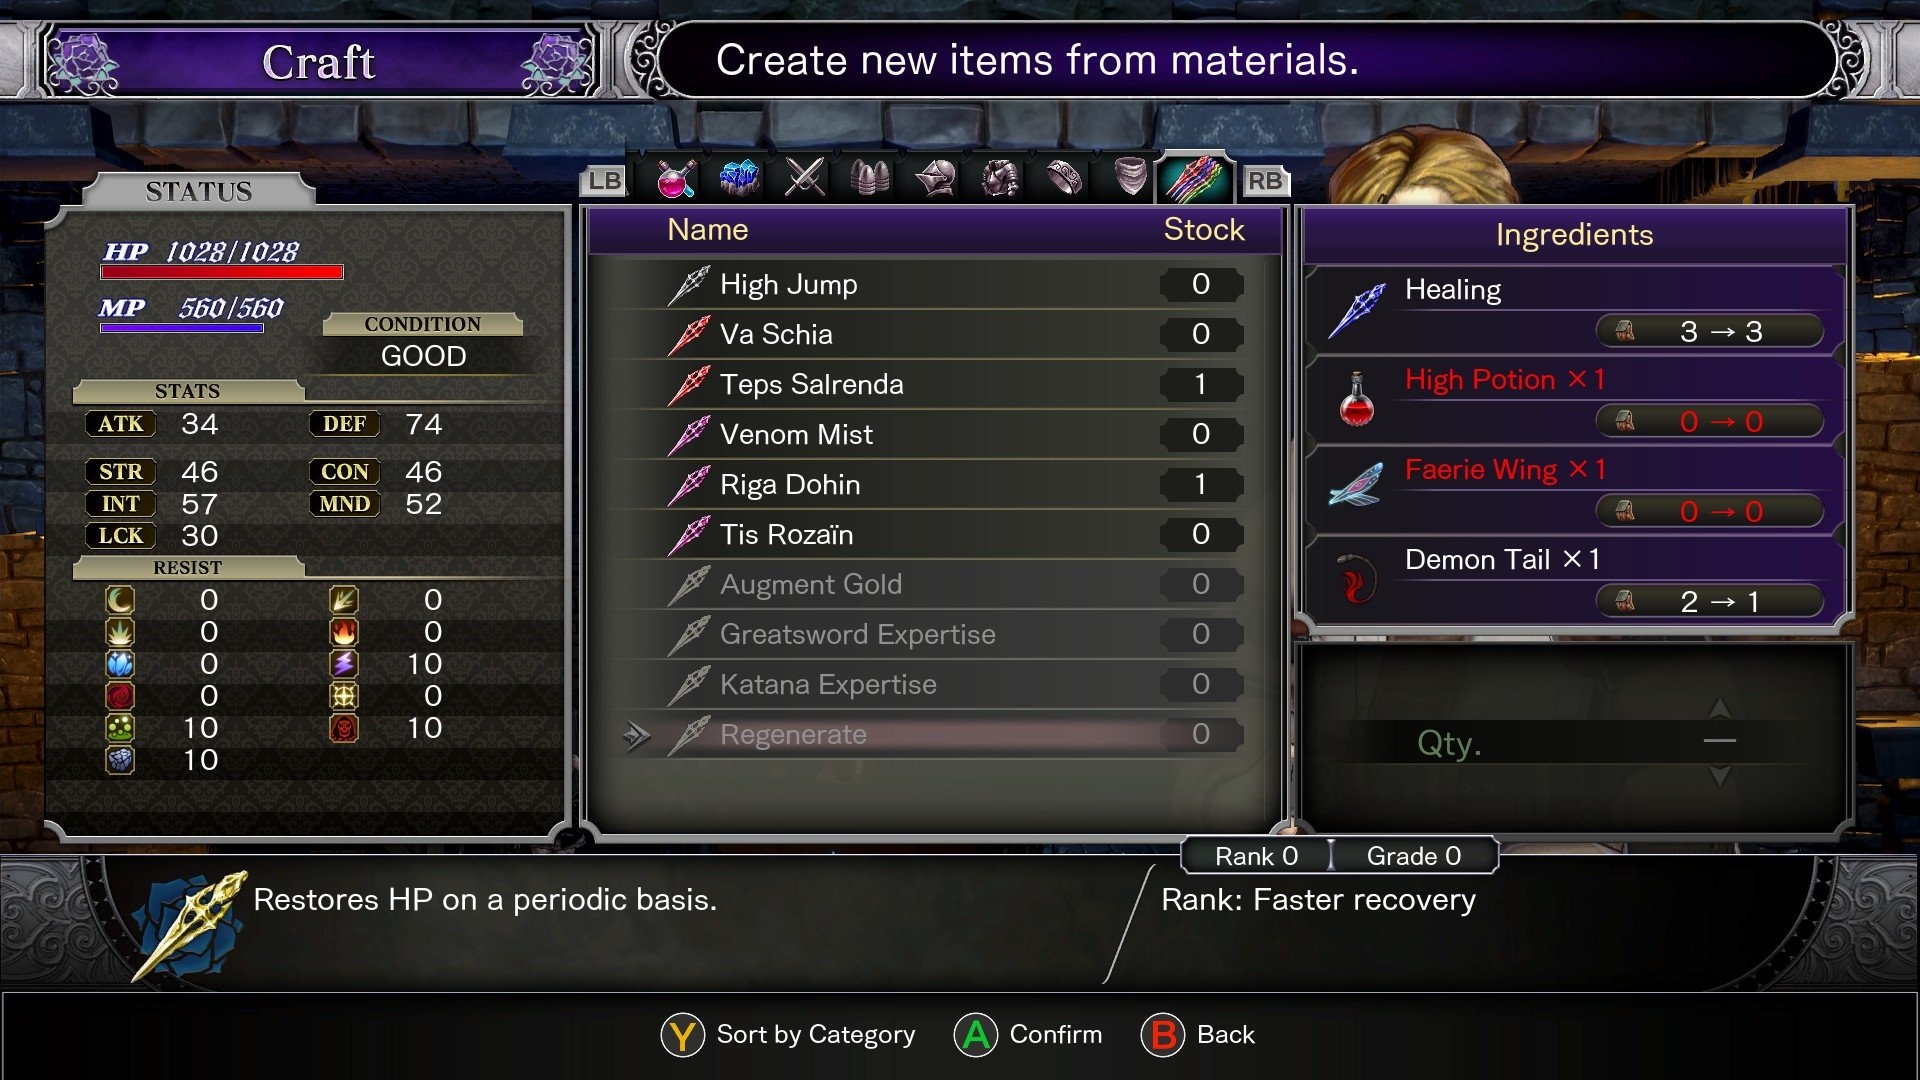 Bloodstained: Ritual of the Night how to heal - Regenerate shard craft Johannes